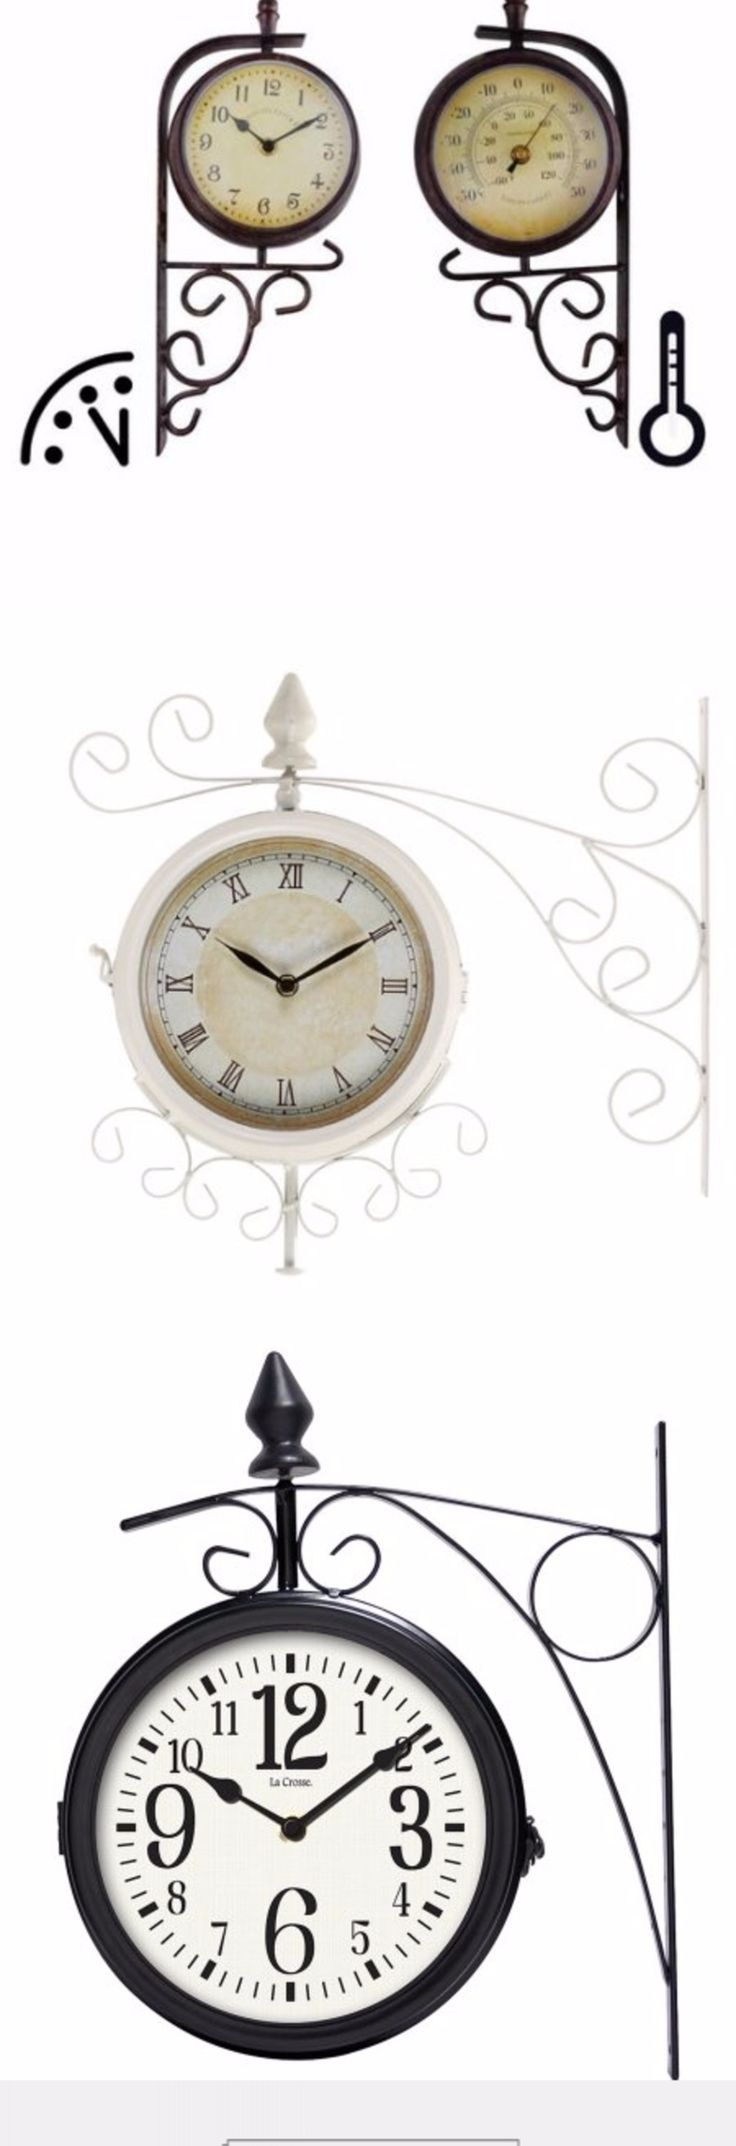 Two Sided Outdoor Clocks make great gifts for a gardener, either for a birthday, Christmas or retirement.